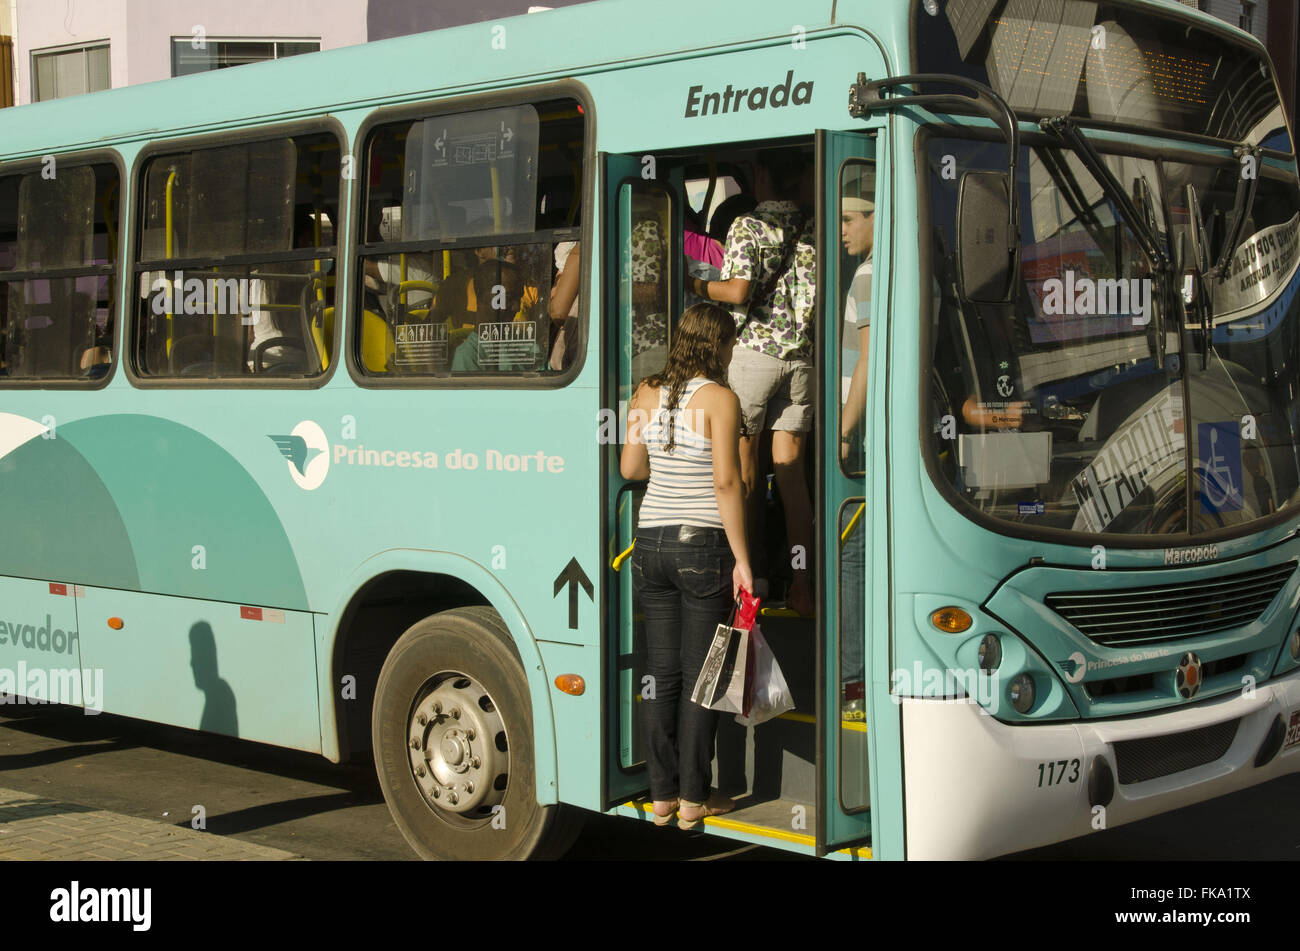 Public transport from the city of Montes Claros - Stock Image